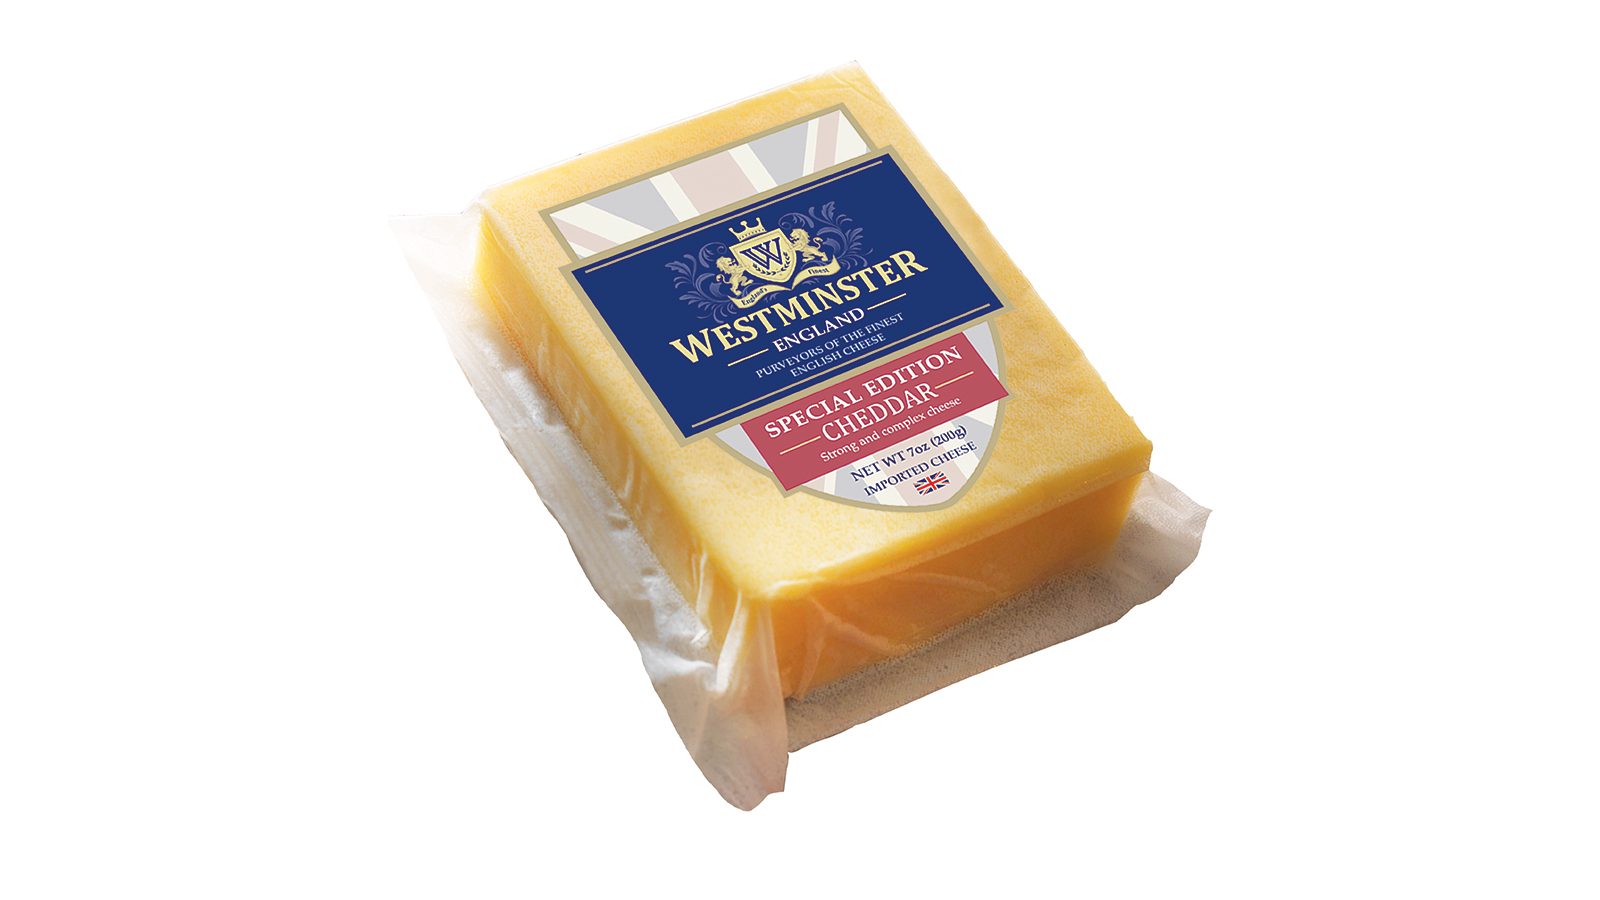 Westminster cheddar cheese